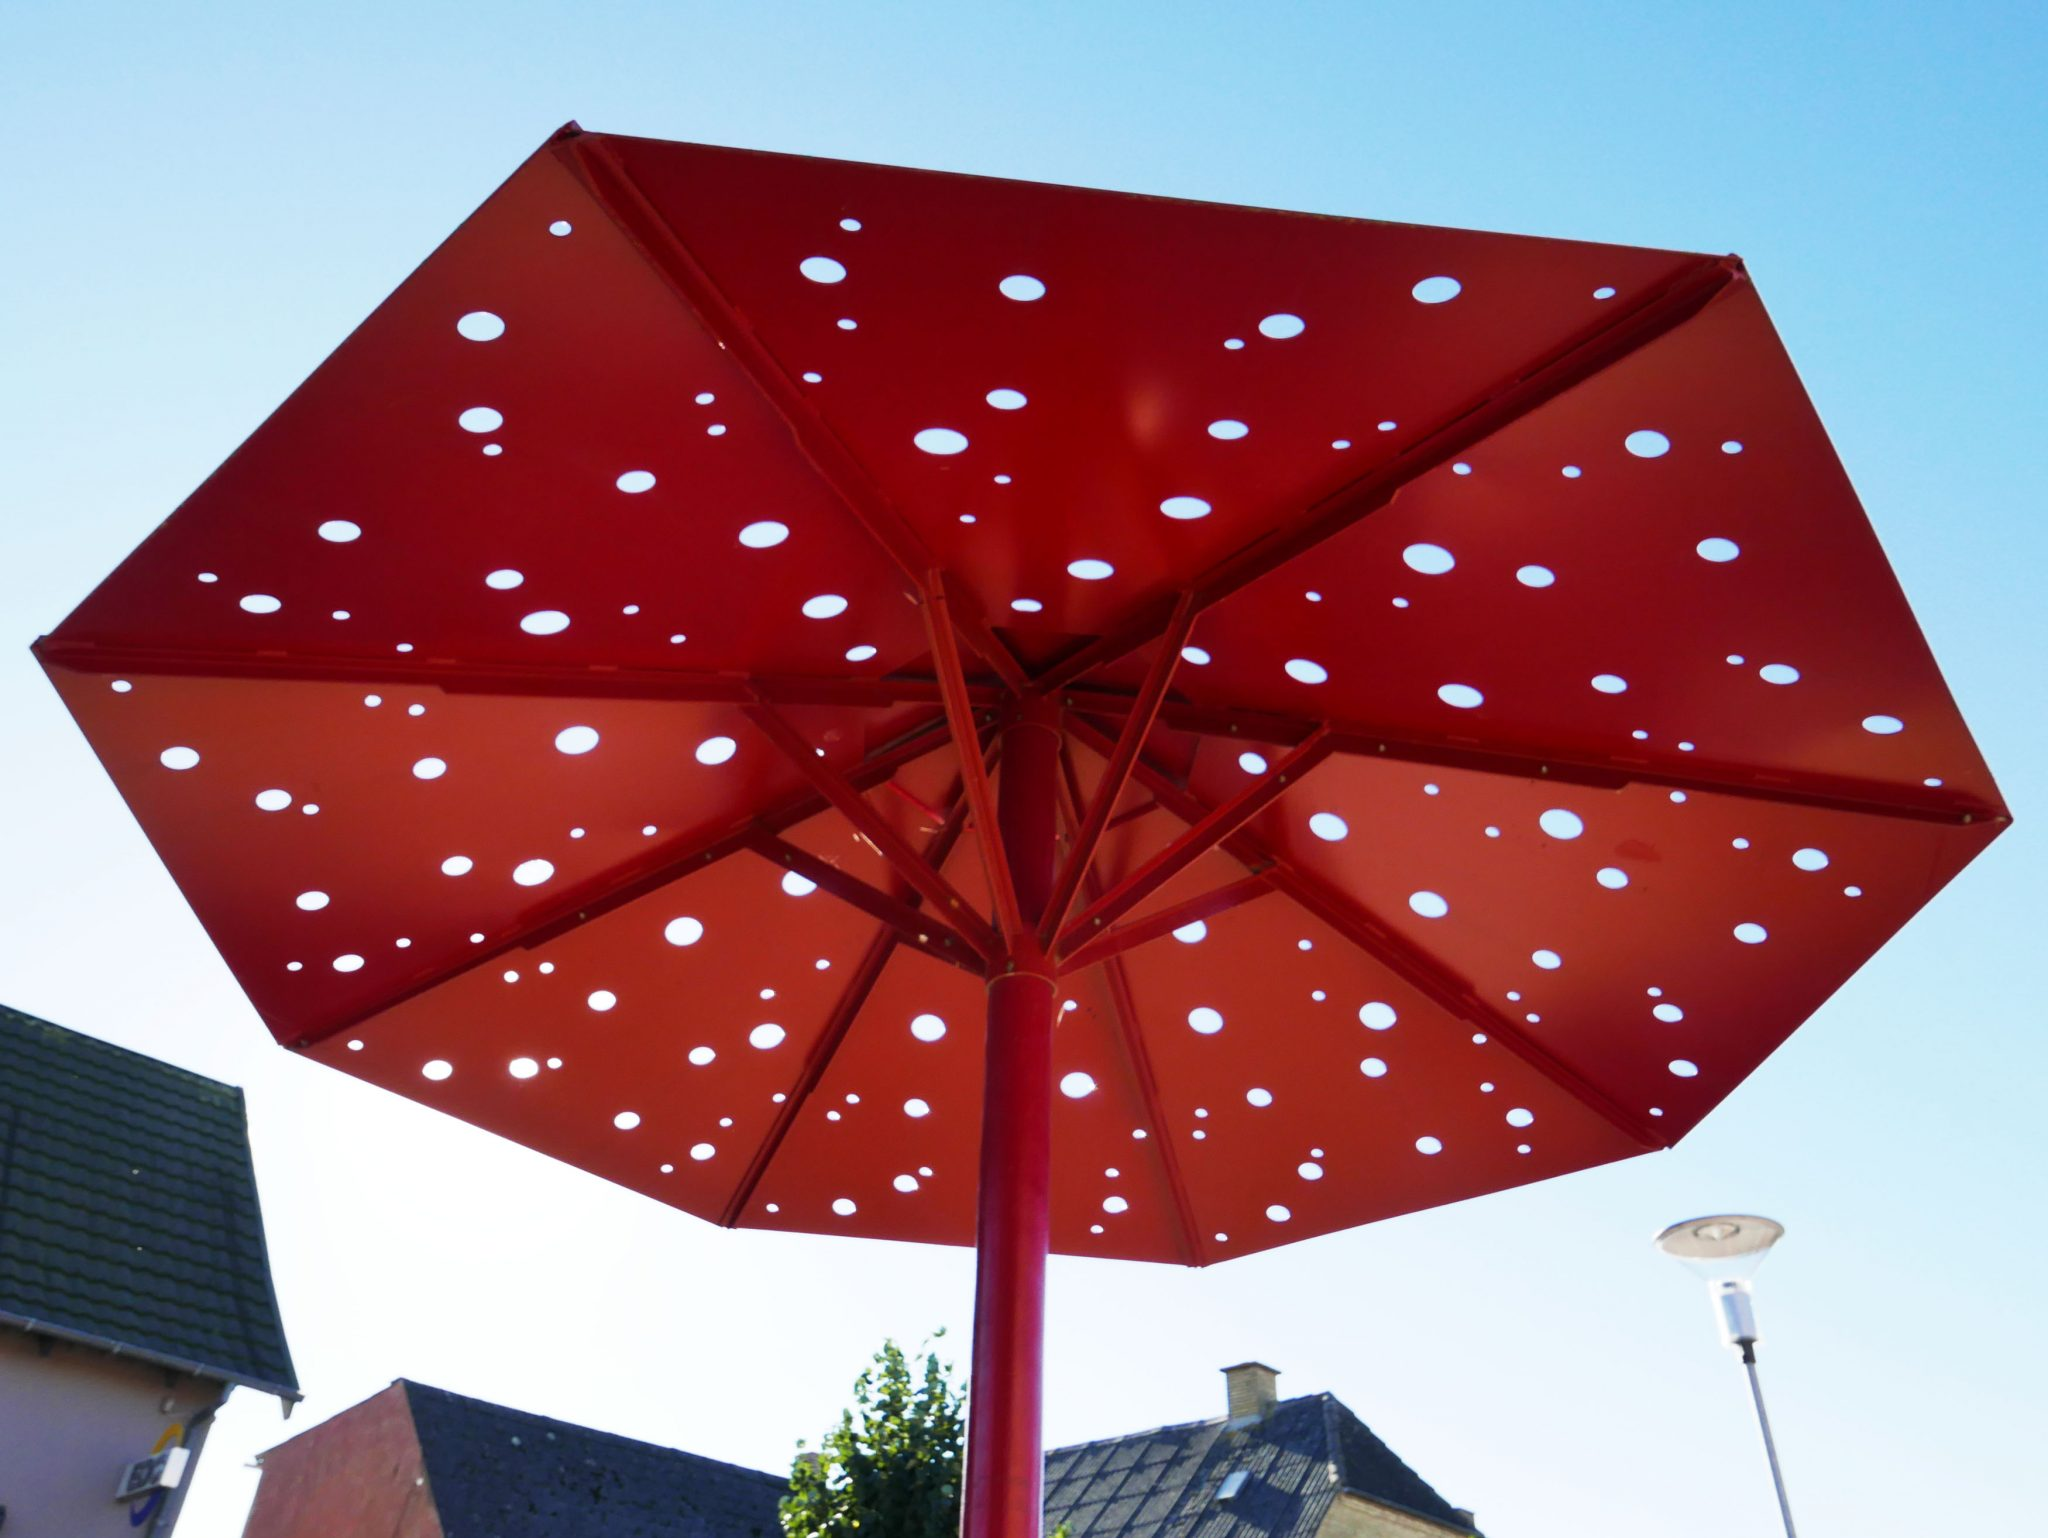 PARASOL, OTTERUP BYMIDTE